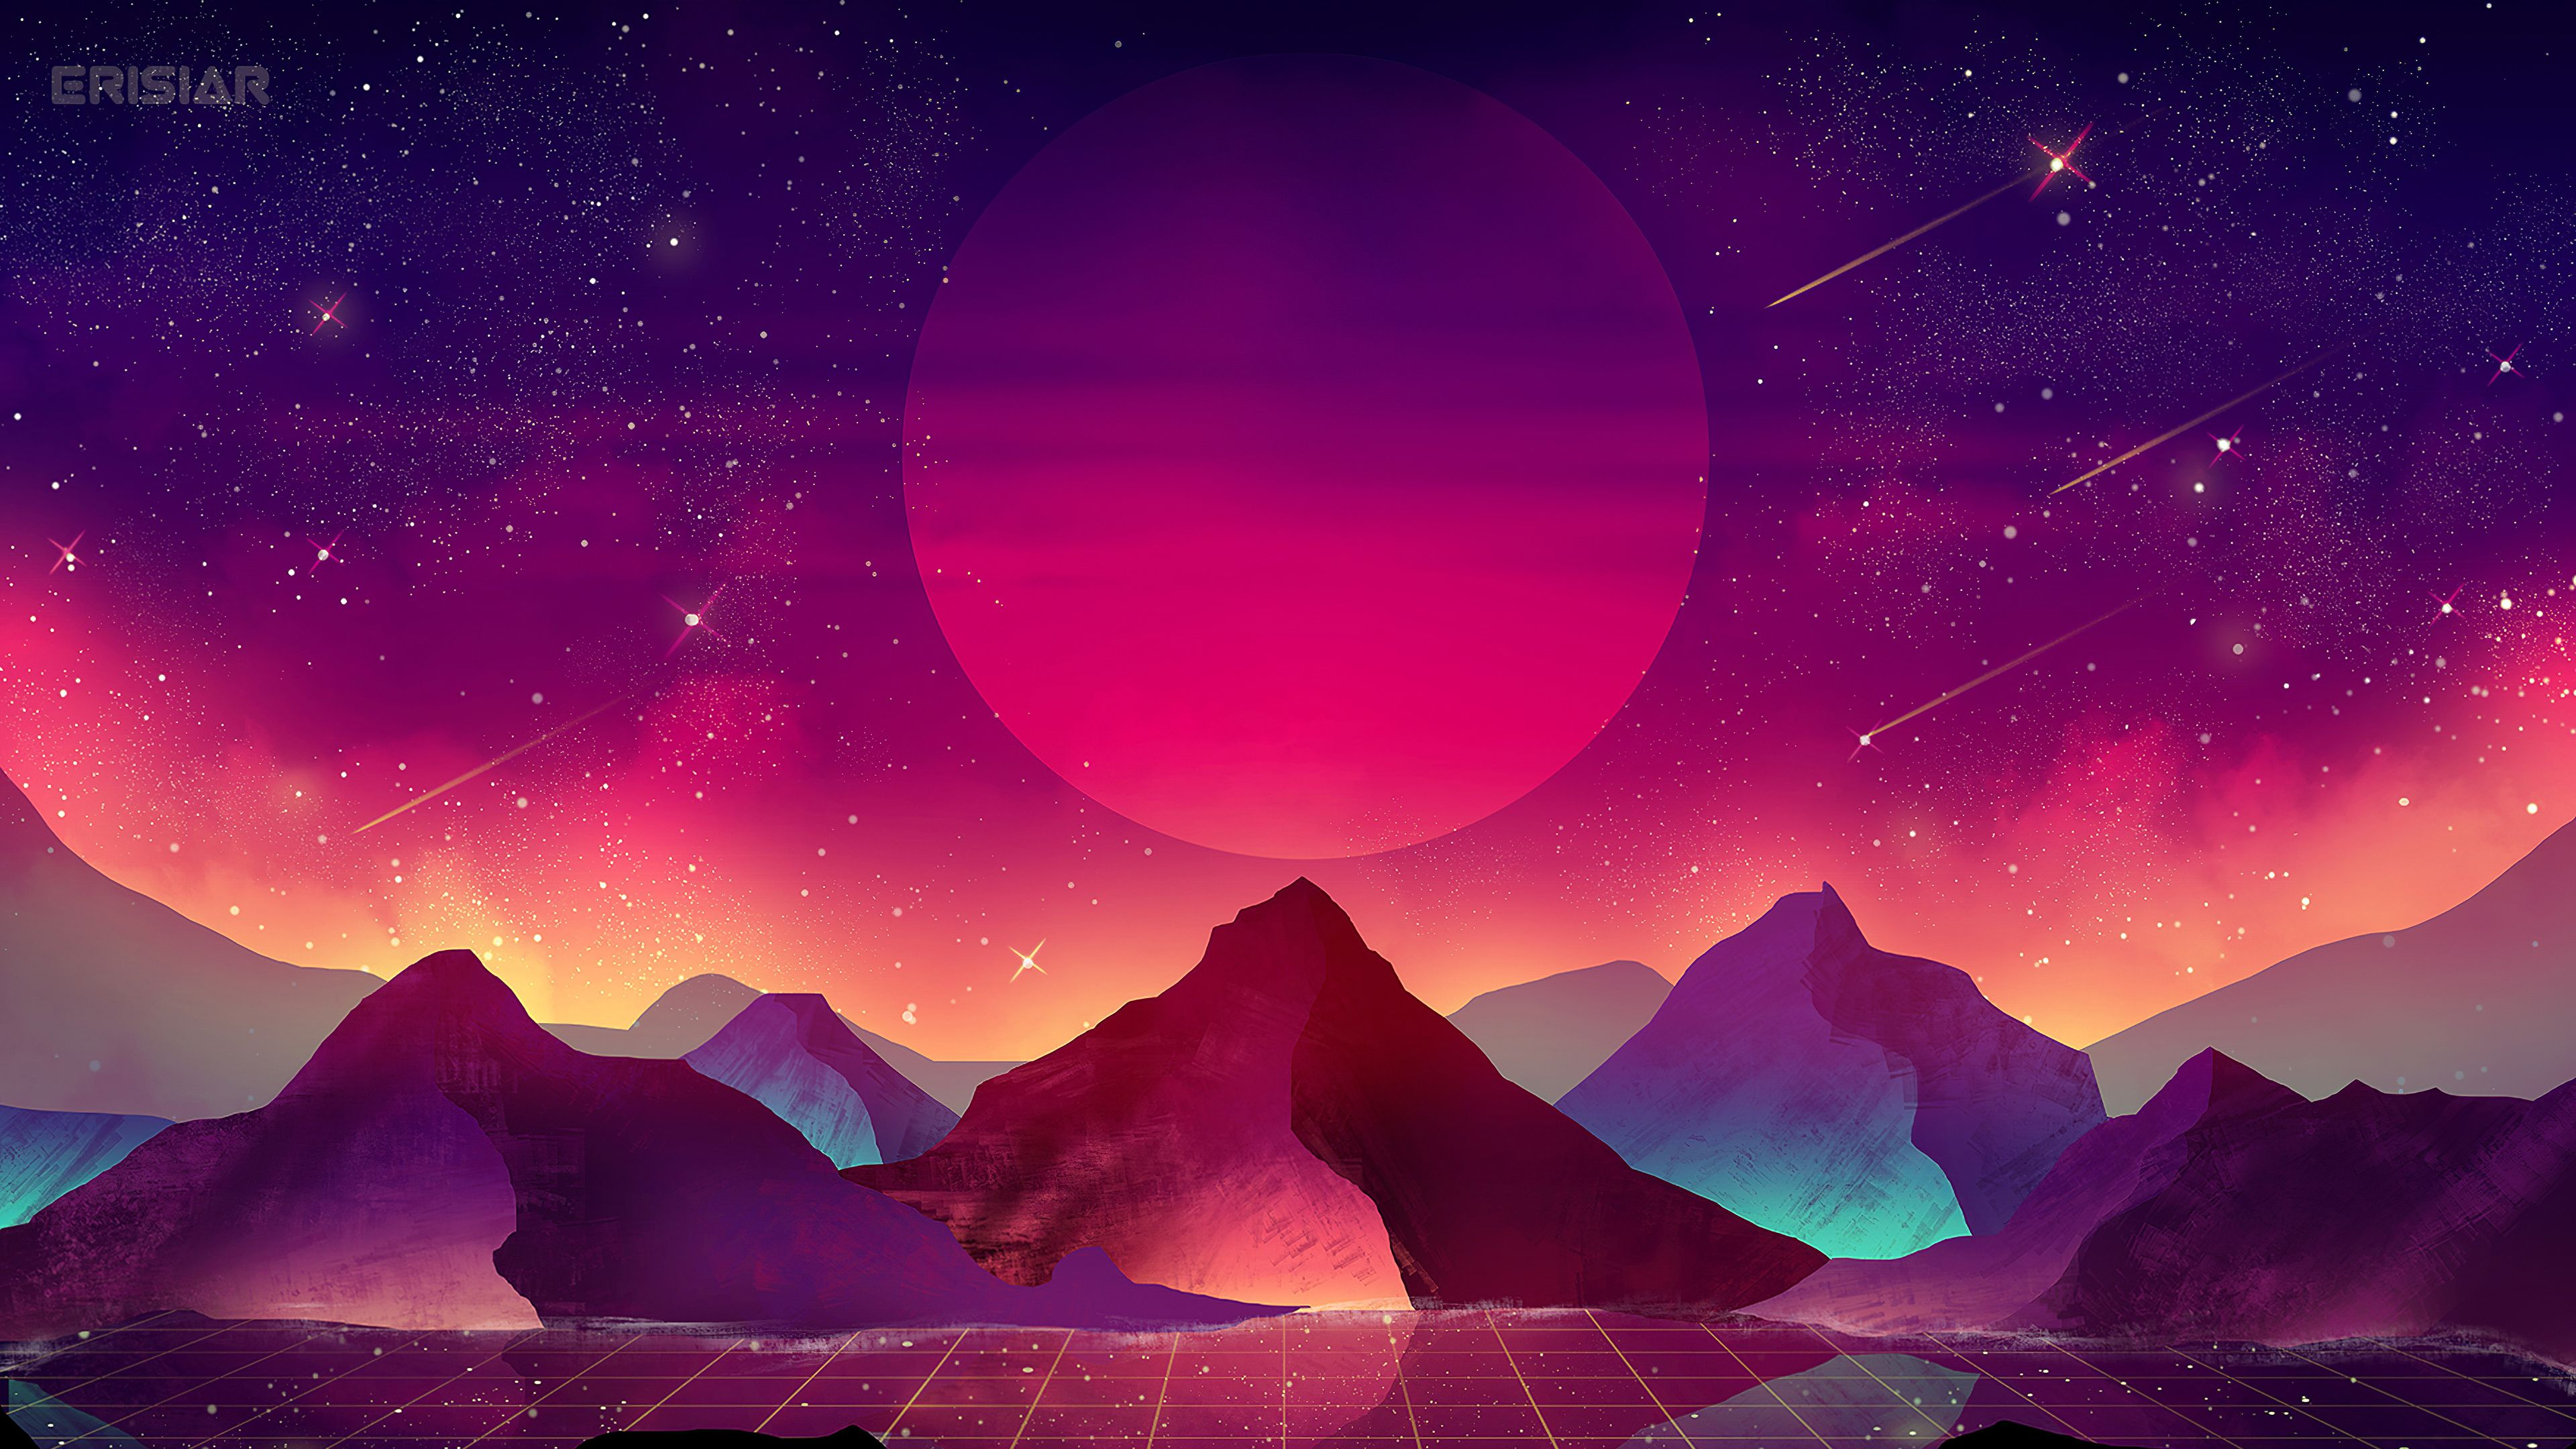 Download 3840x2160 Wallpaper Terrain Vaporwave Moon Mountains Landscape Art 4k Uhd 16 9 Widescreen 384 Uhd Wallpaper Vaporwave Wallpaper Art Wallpaper